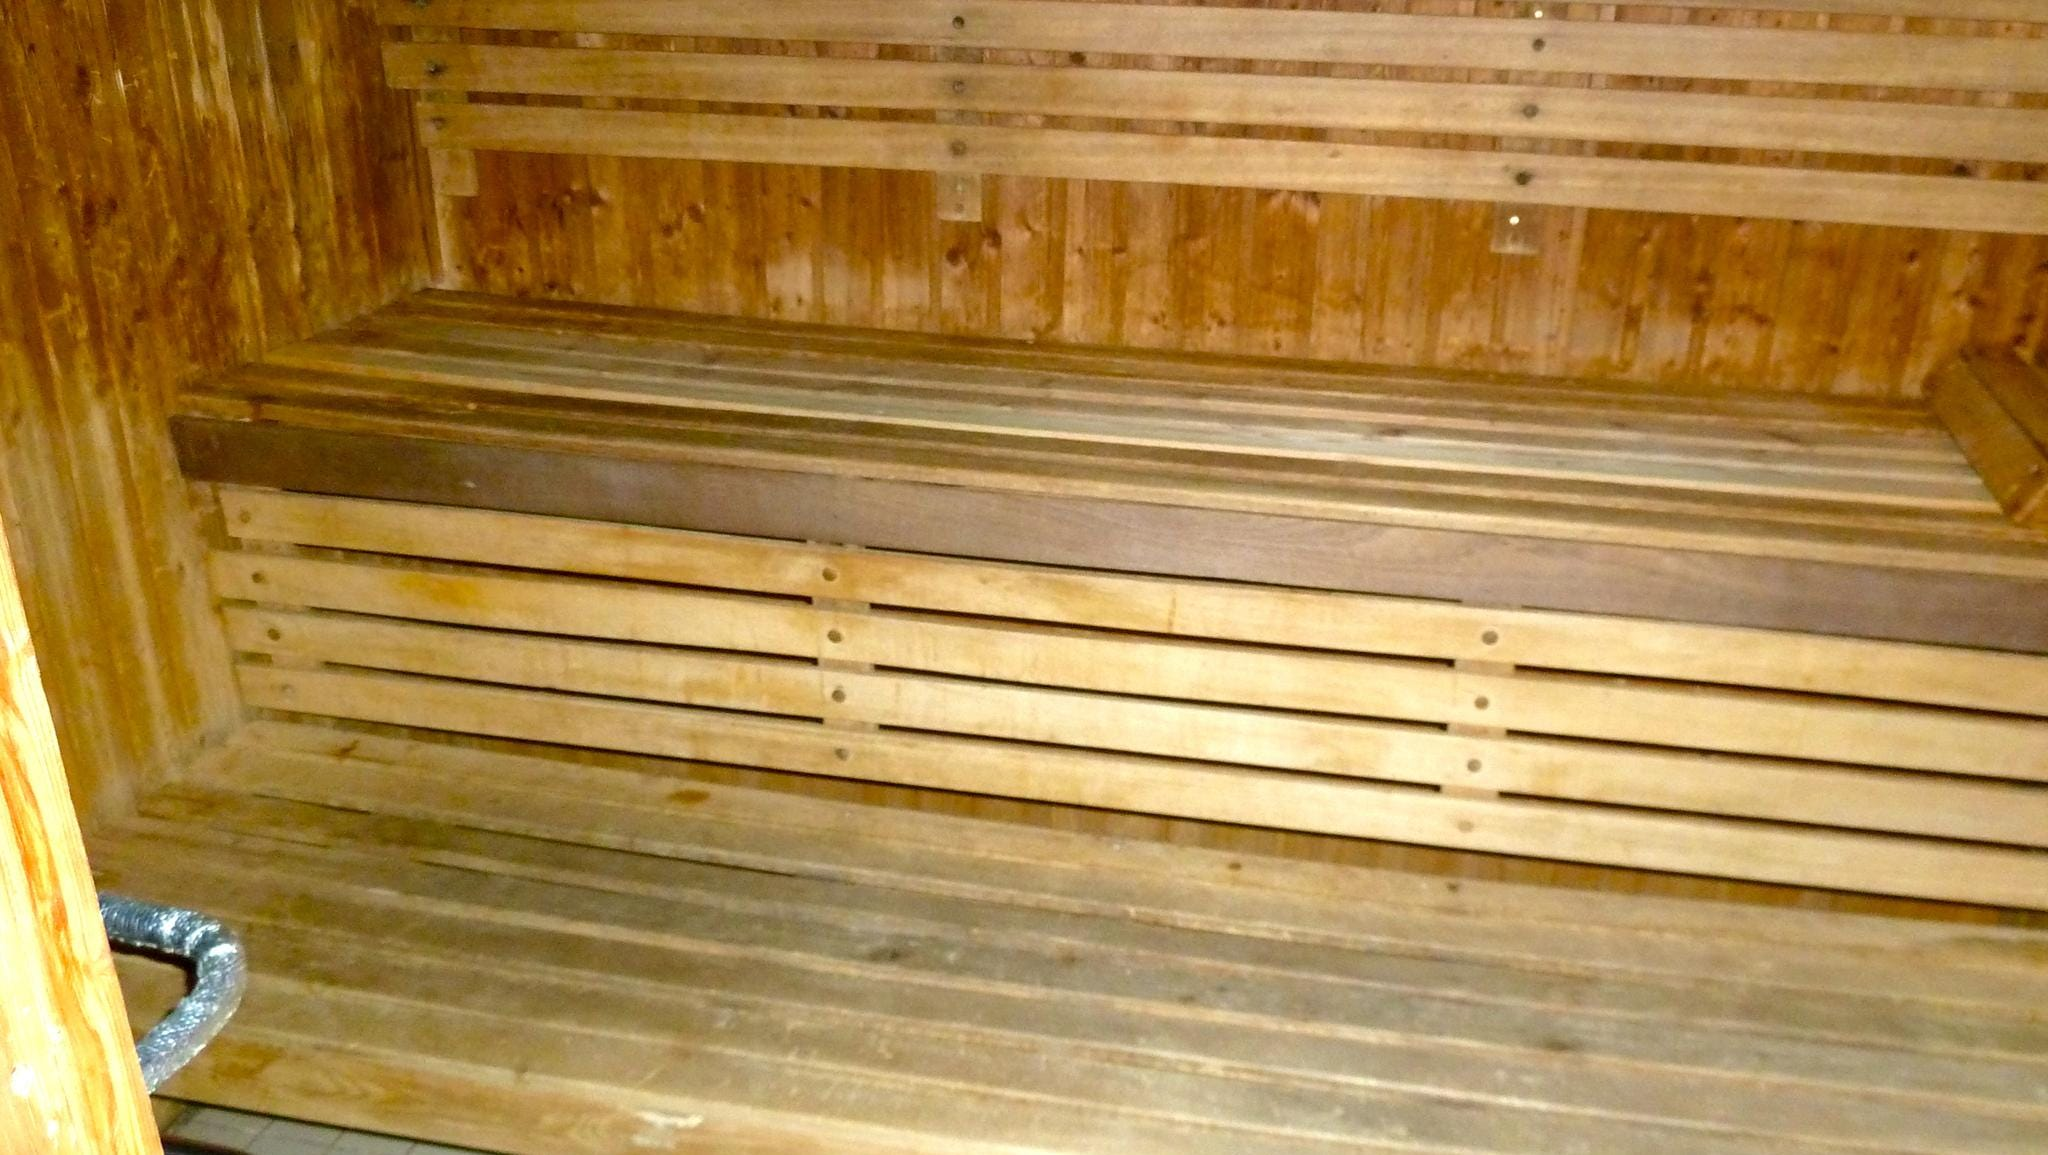 The Marco Polo also has separate men's and women's saunas.